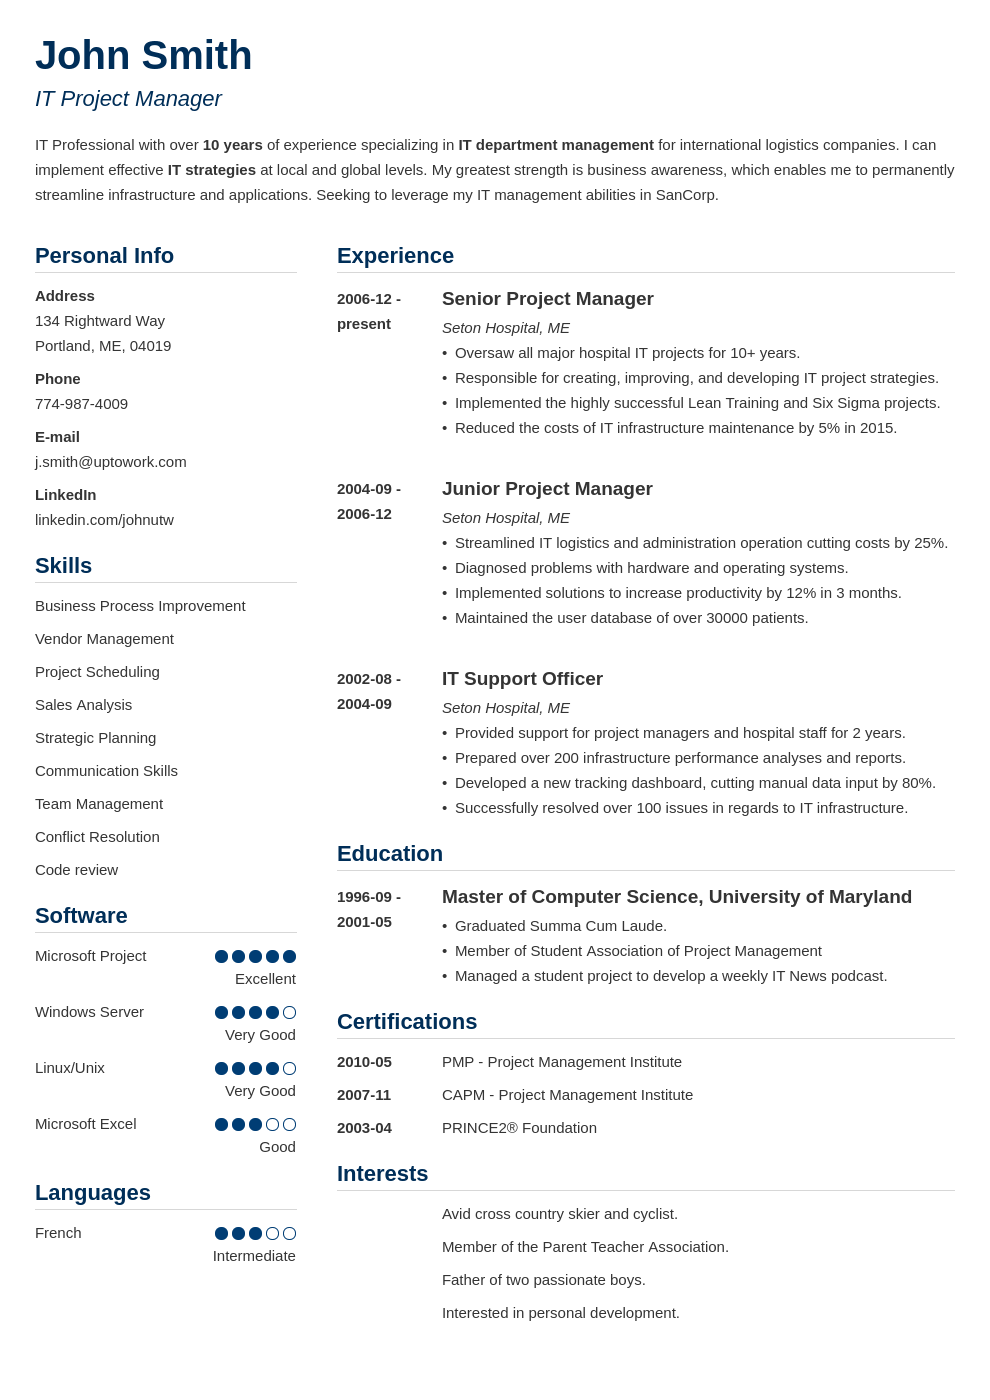 Download Resume Templates | 20 Resume Templates Download Create Your Resume In 5 Minutes